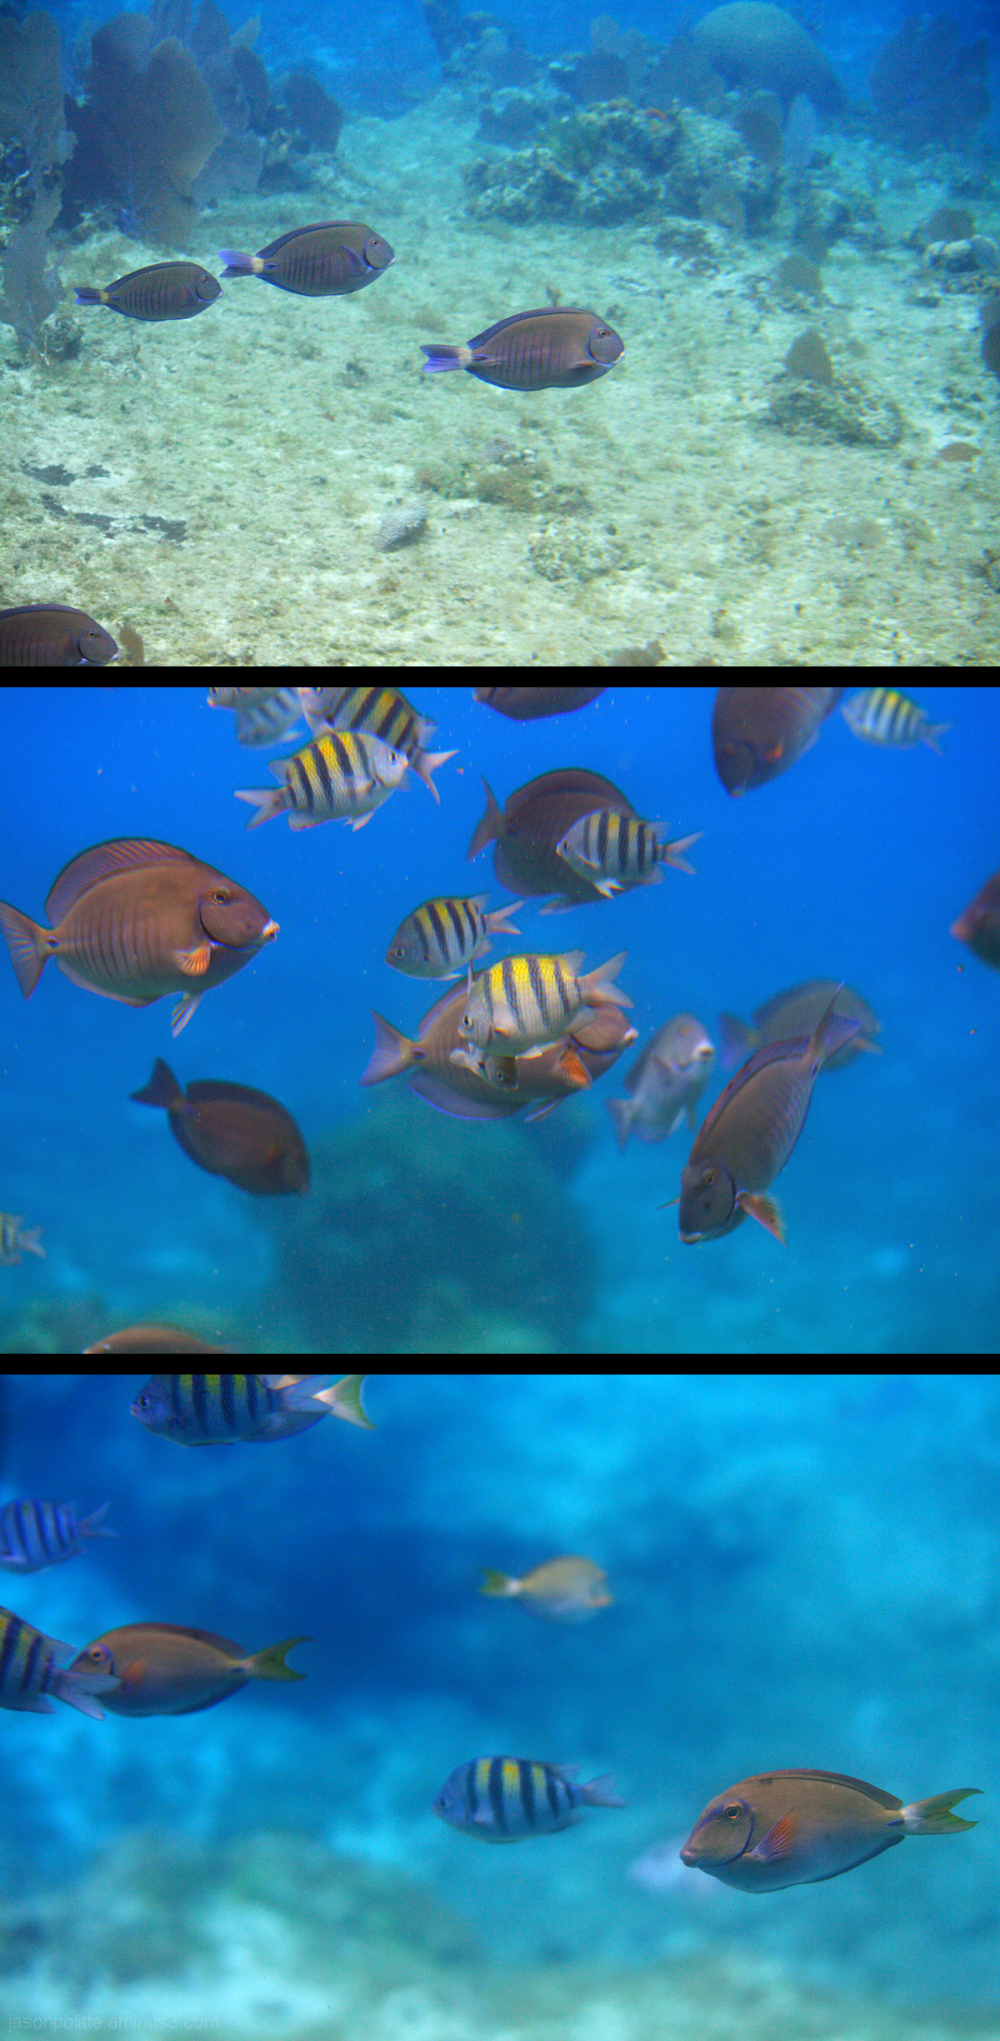 Sergeant Majors and Ocean Sunfish at Paradise Reef